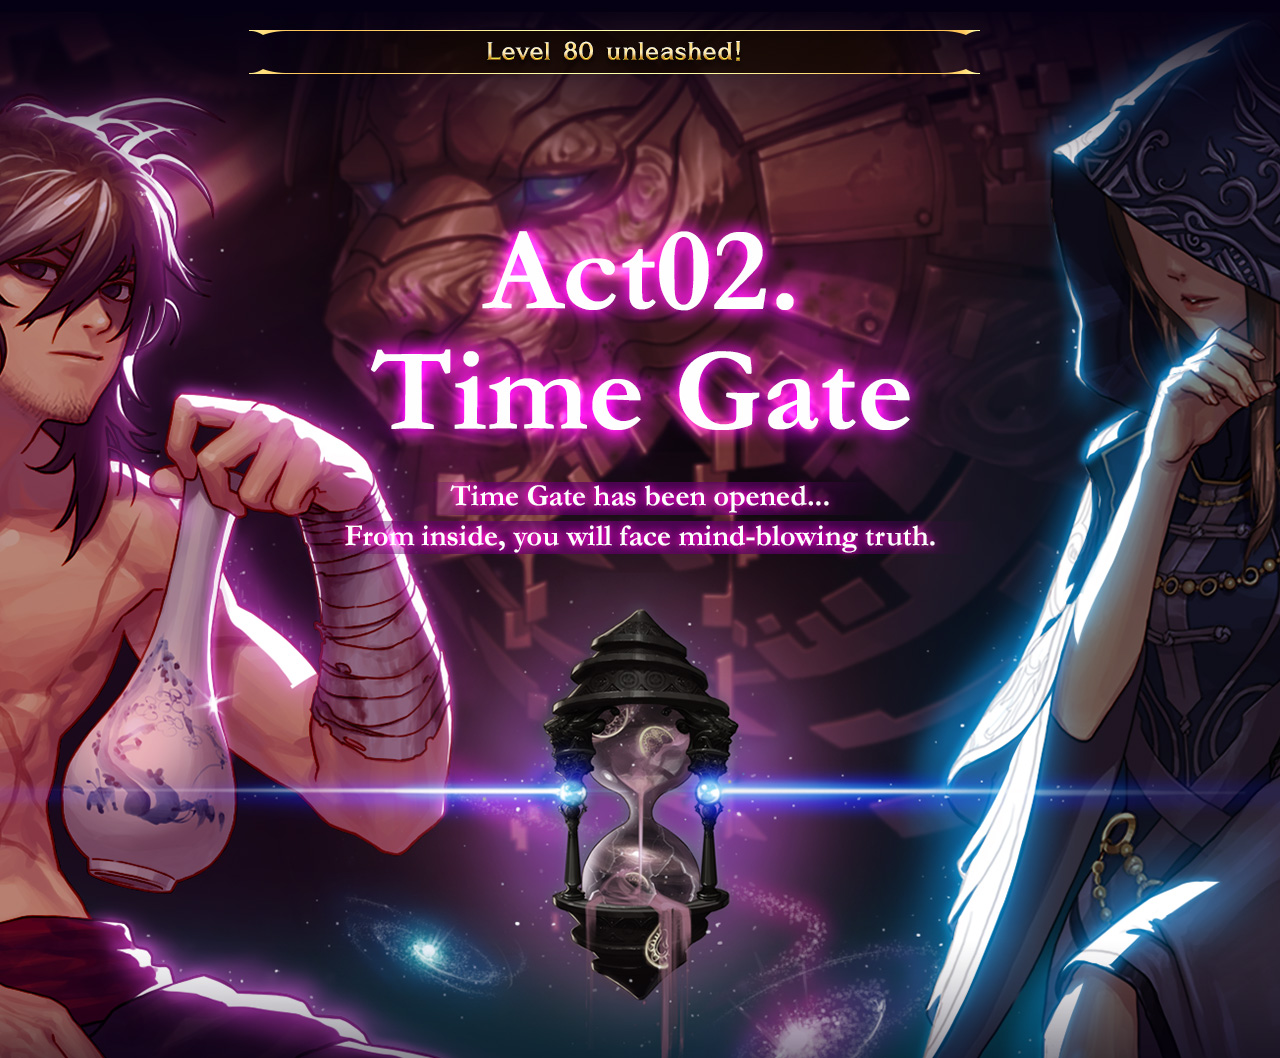 Act02.Time Gate Time Gate has been opened...From inside, you will face mind-blowing truth.